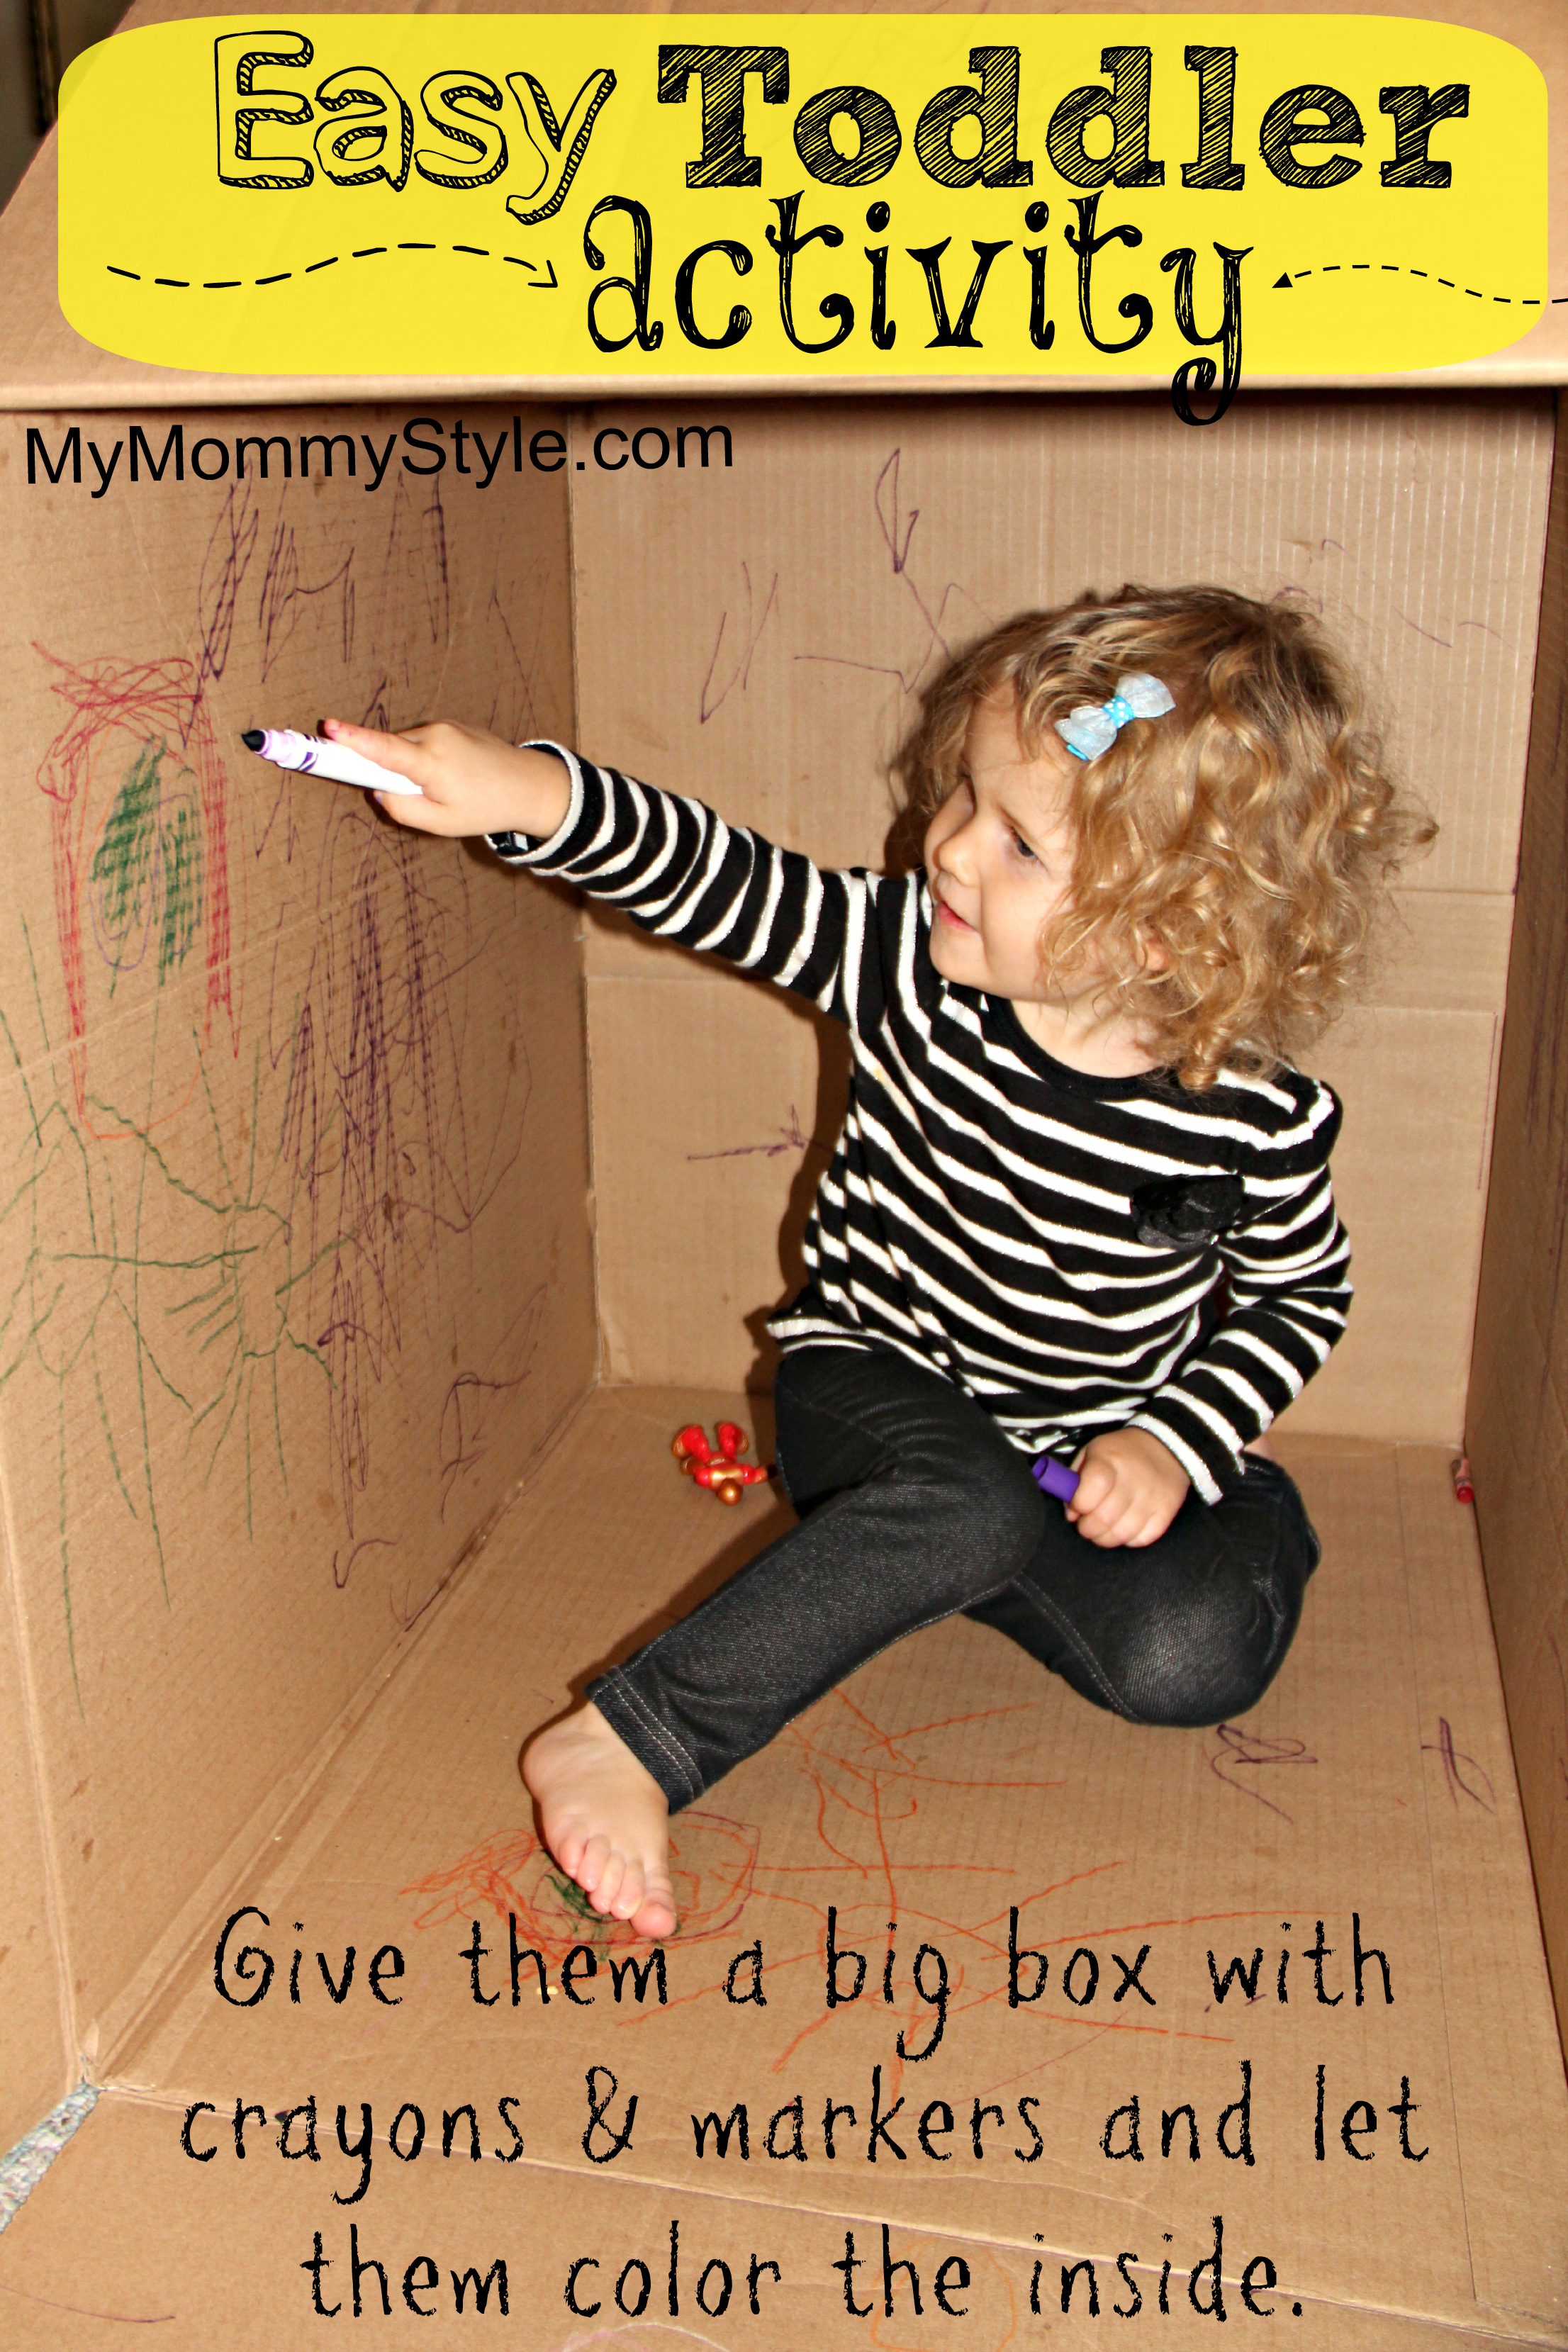 Easy Toddler Activity - My Mommy Style